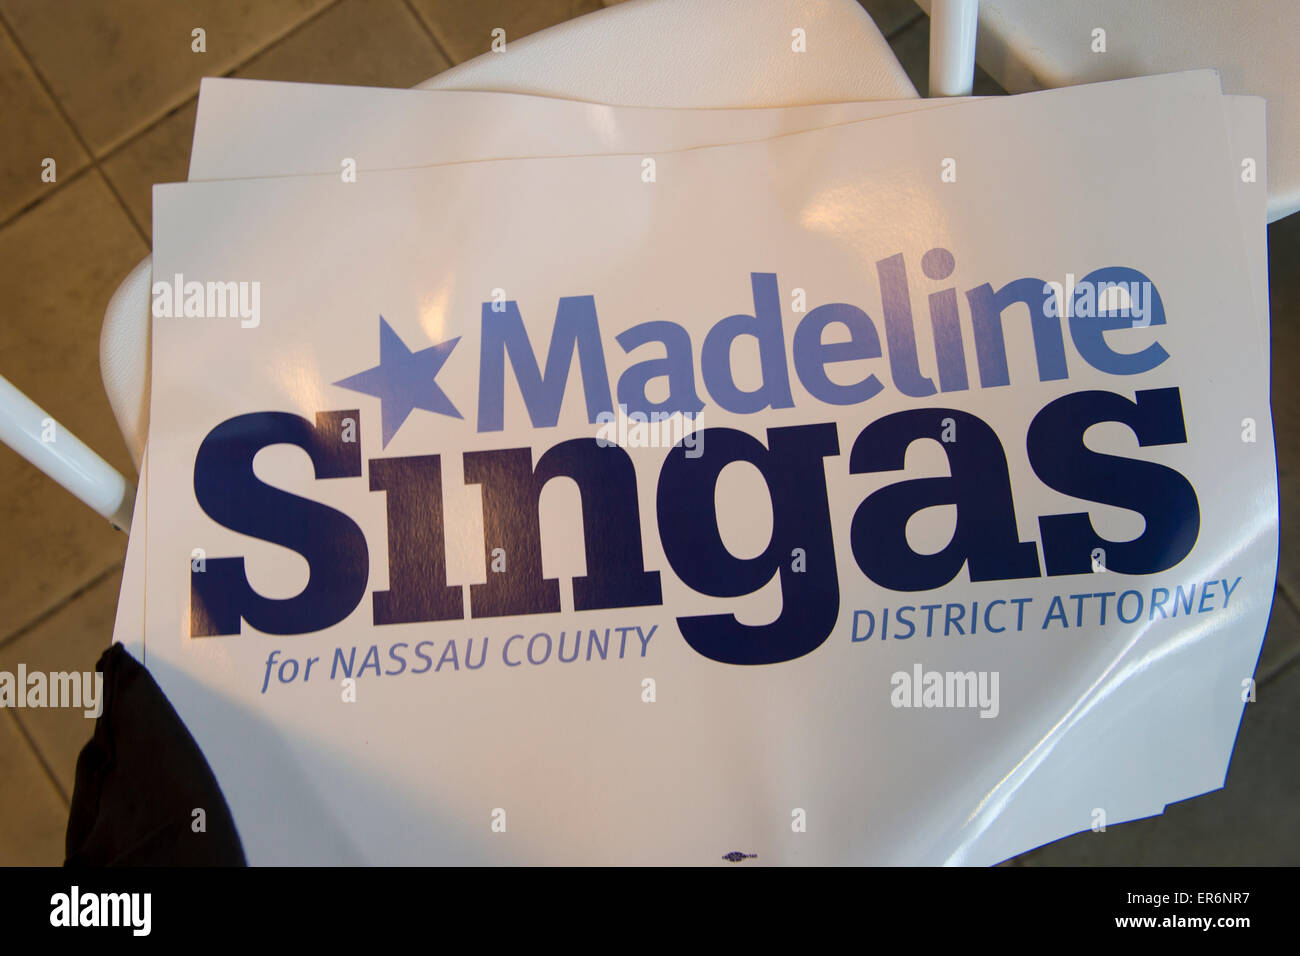 Garden City, New York, USA. 26th May 2015. At end of Nassau County Democrats nominating convention, a sign for Madeline - Stock Image